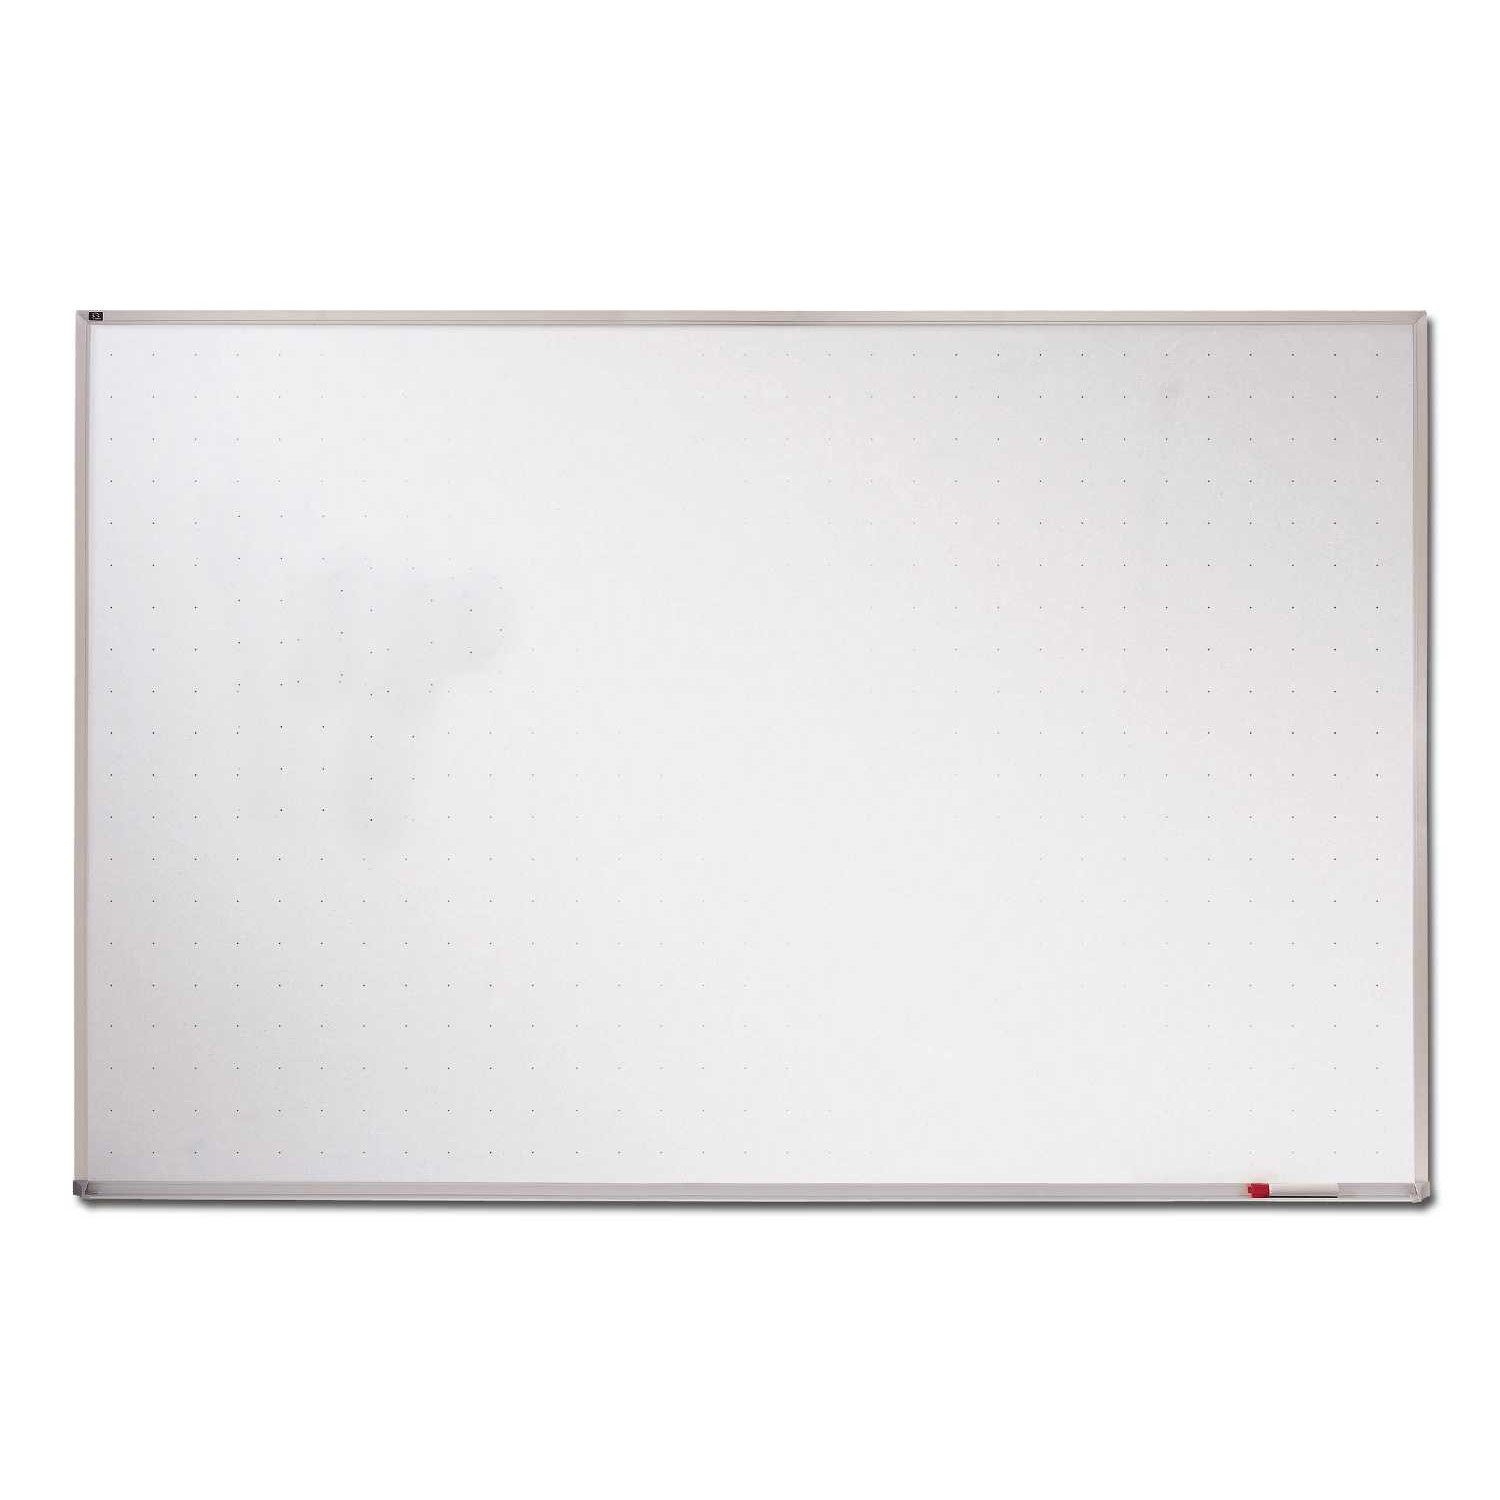 Quartet Porcelain Magnetic Whiteboard with Aluminum Frame 120 x 48 in. by Acco Brands USA LLC